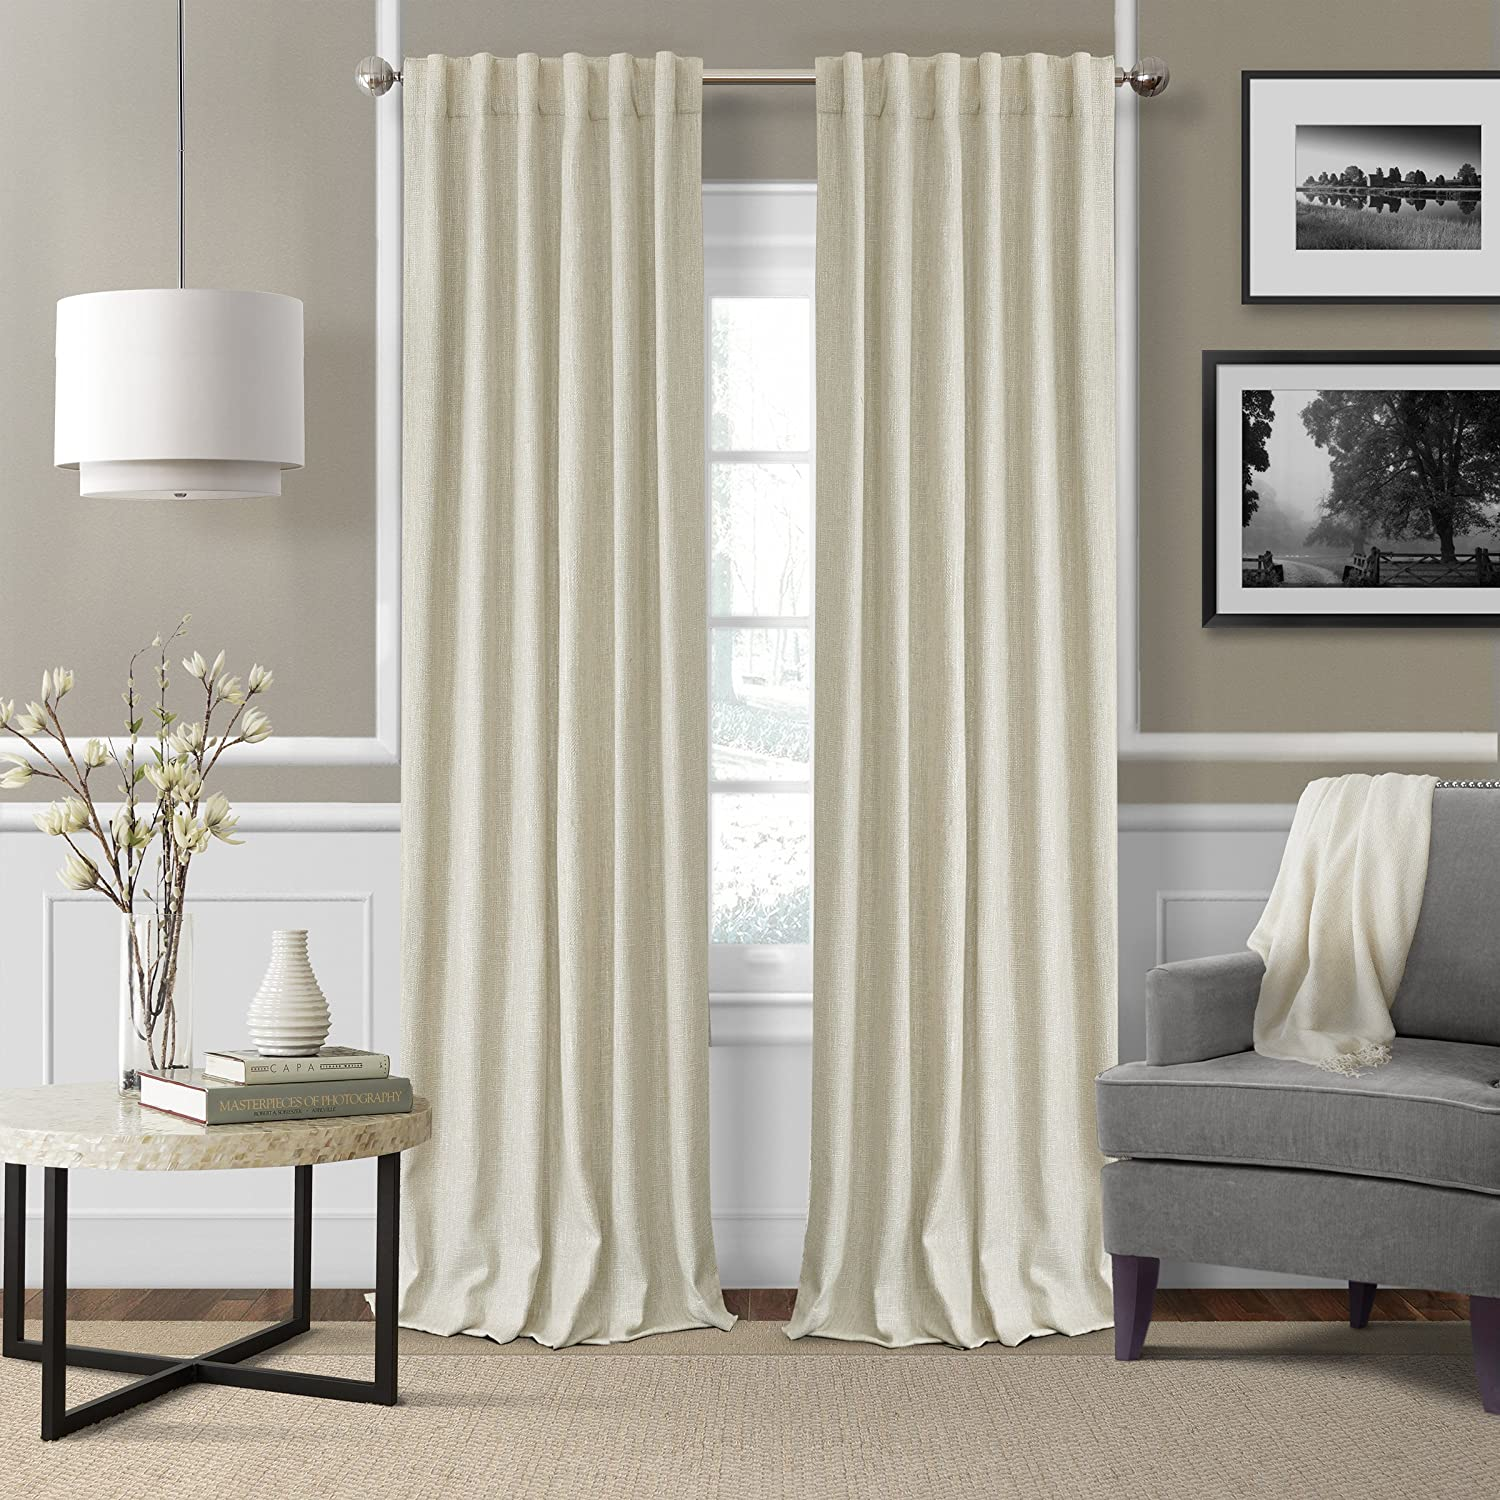 Amazon Com Elrene Home Fashions 26865900941 3 In 1 Blackout Energy Efficient Lined Linen Rod Pocket Window Curtain Drape Panel 52 X 84 Ivory 1 Home Kitchen